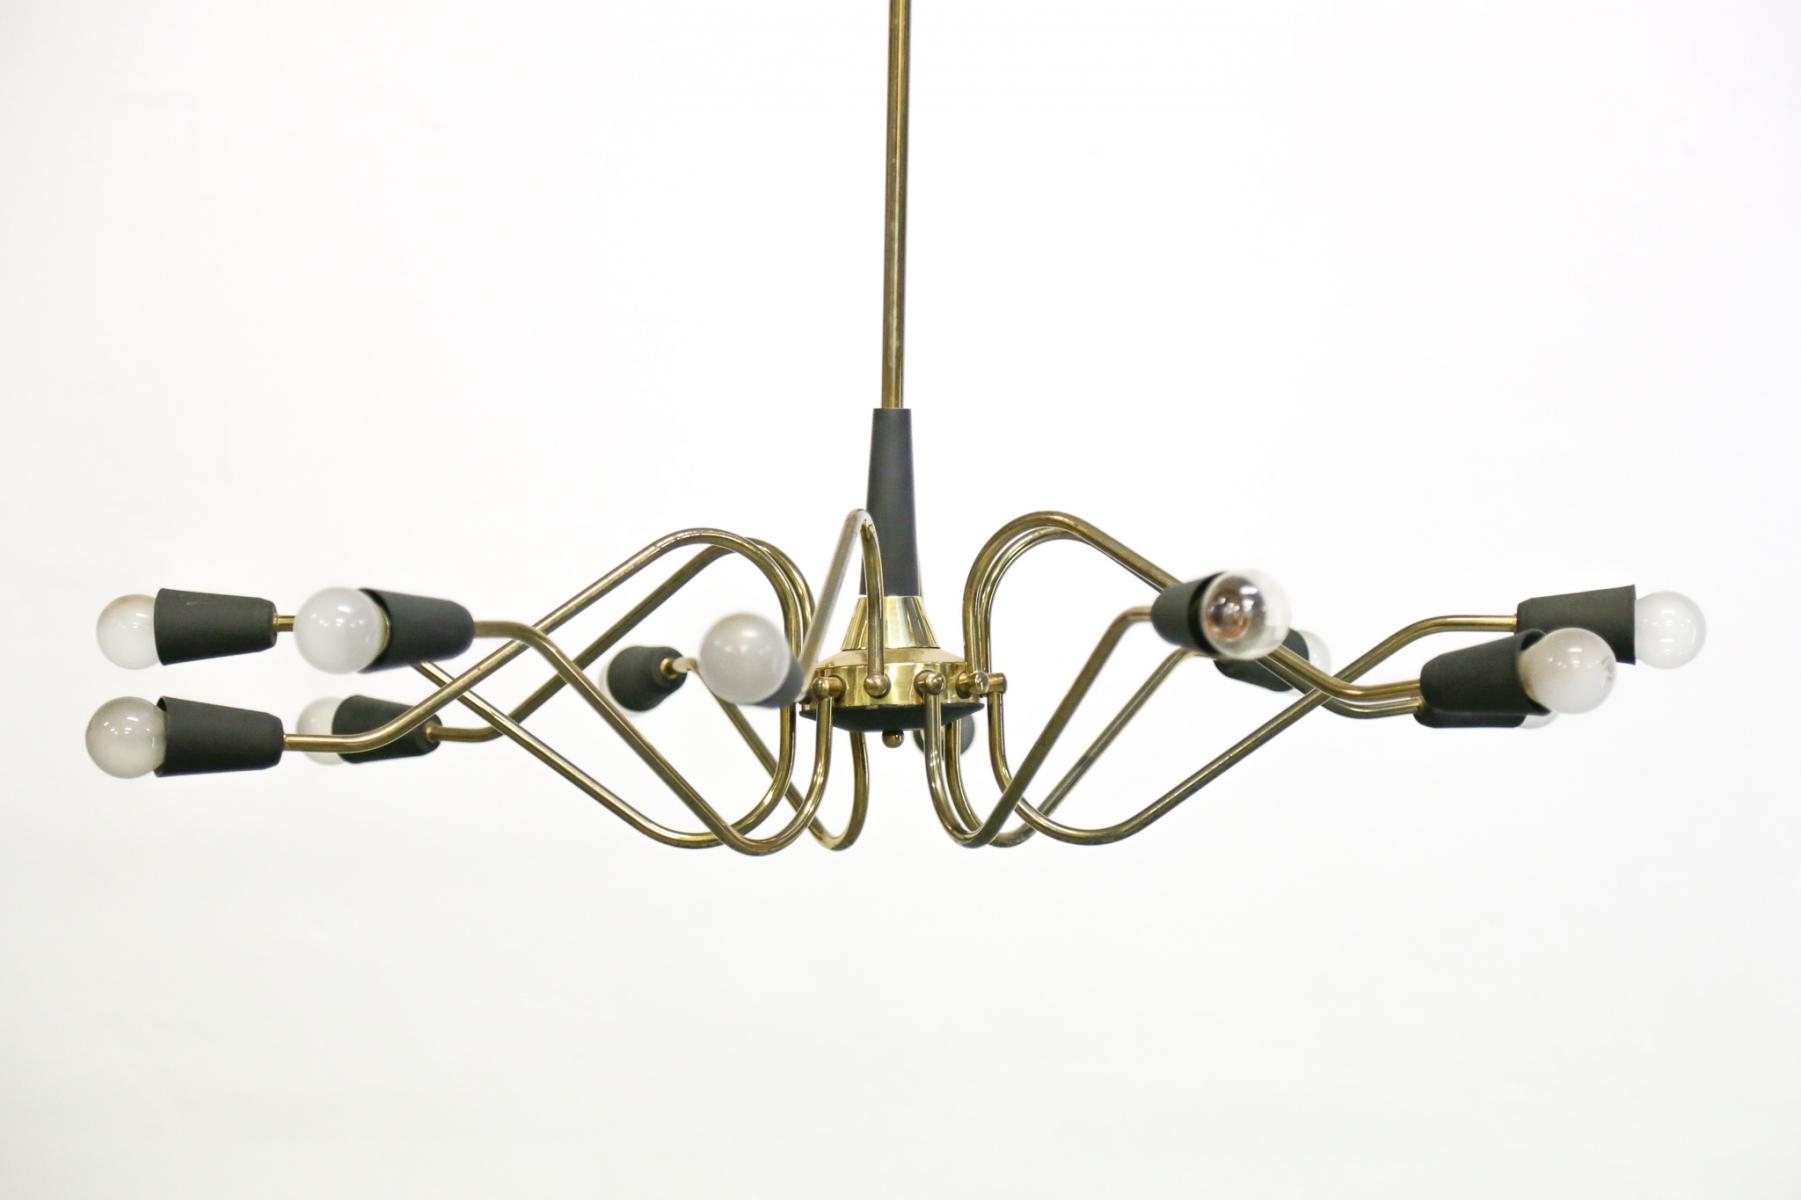 Vintage Italian Chandelier From Stilnovo For Sale At Pamono Inside Vintage Italian Chandelier (#10 of 12)